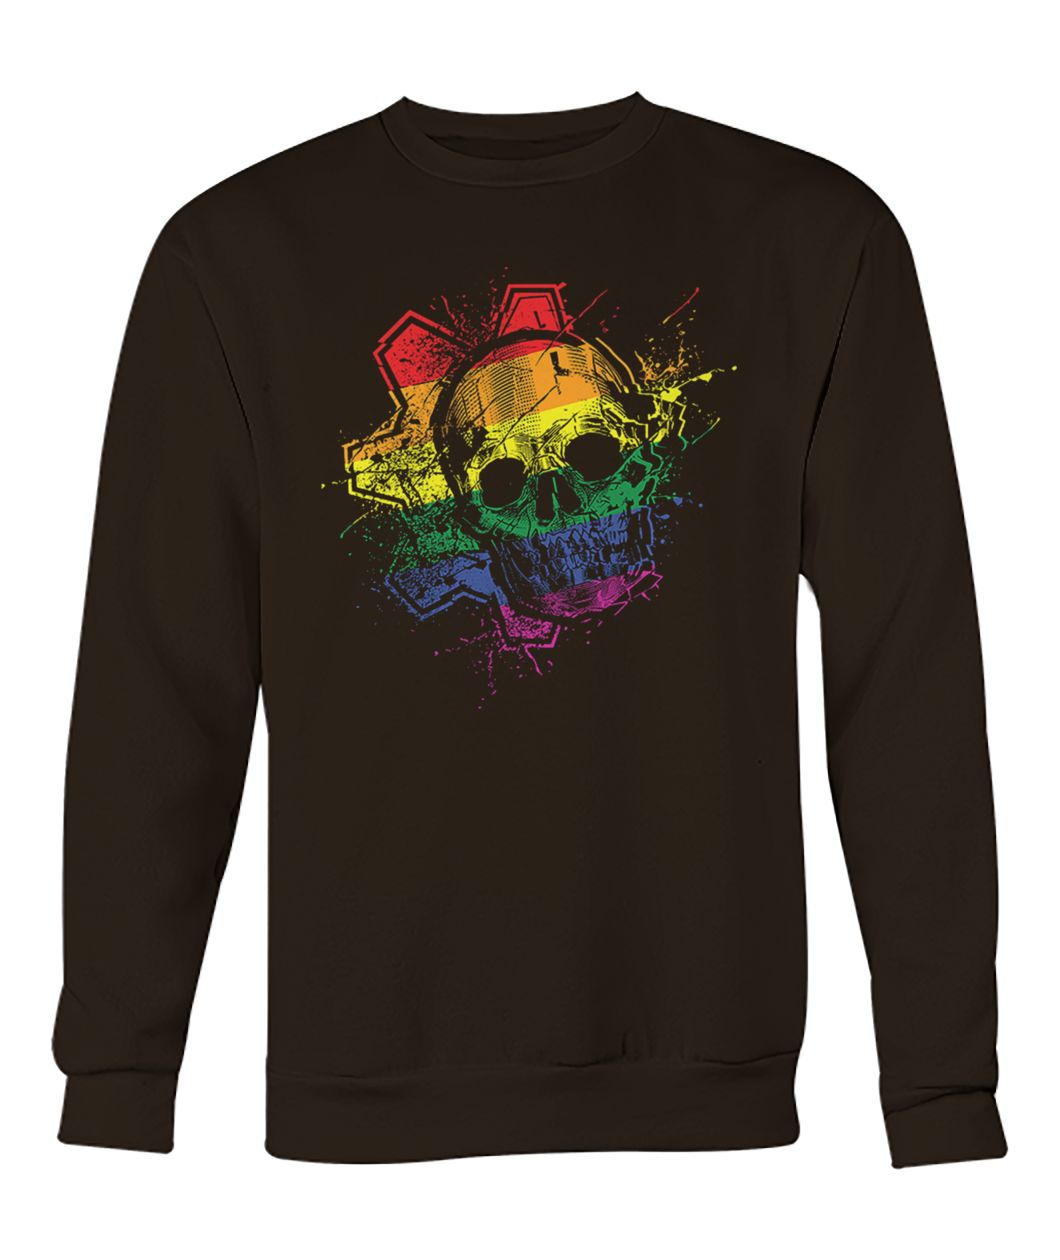 Skull with lgbt flag crew neck sweatshirt